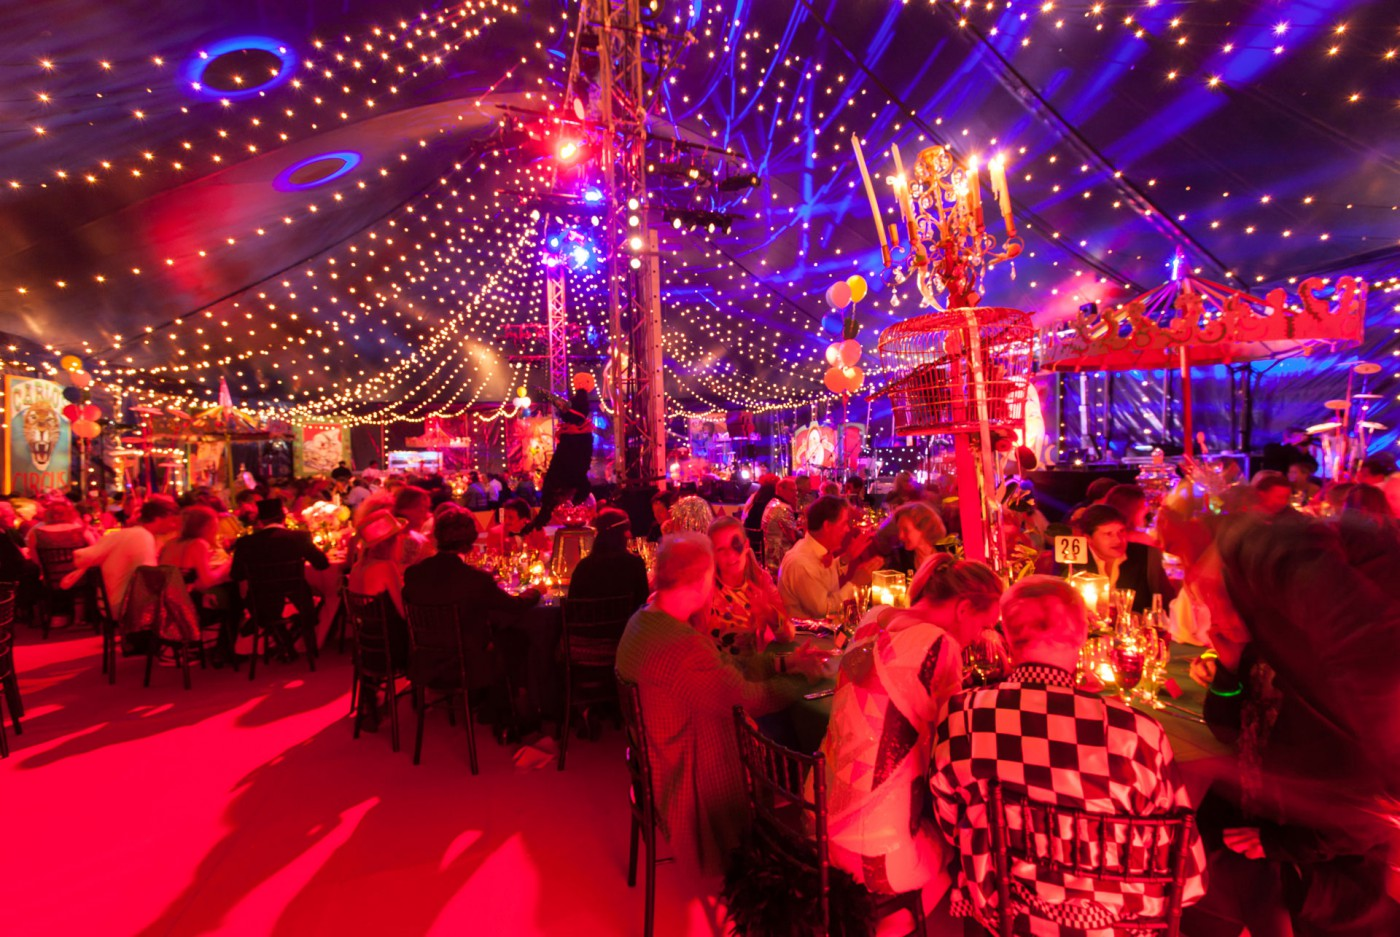 Circus, Great Show, Freakshow, Circusact, spectaculair, evenement, thema, decoratie, eventaankleding, styling, beleving, entertainment, feestelijk, diner, circusartiest, circusevenement, circusthema